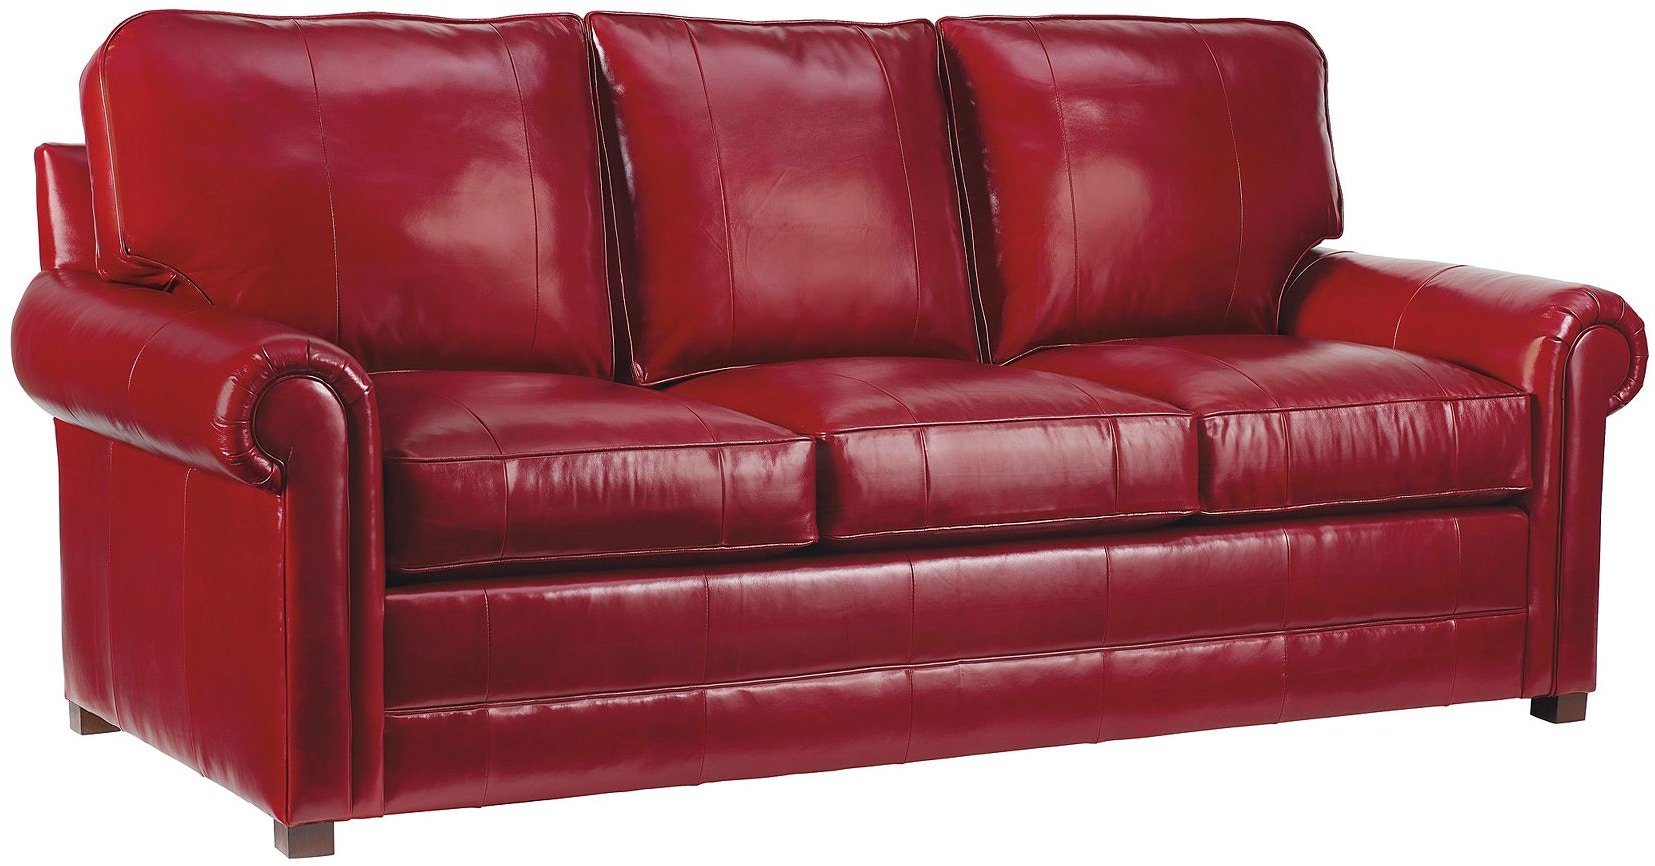 Henredon Furniture L4700 C Sofa 1 Living Room Fireside Custom Upholstery Fireside Sofa